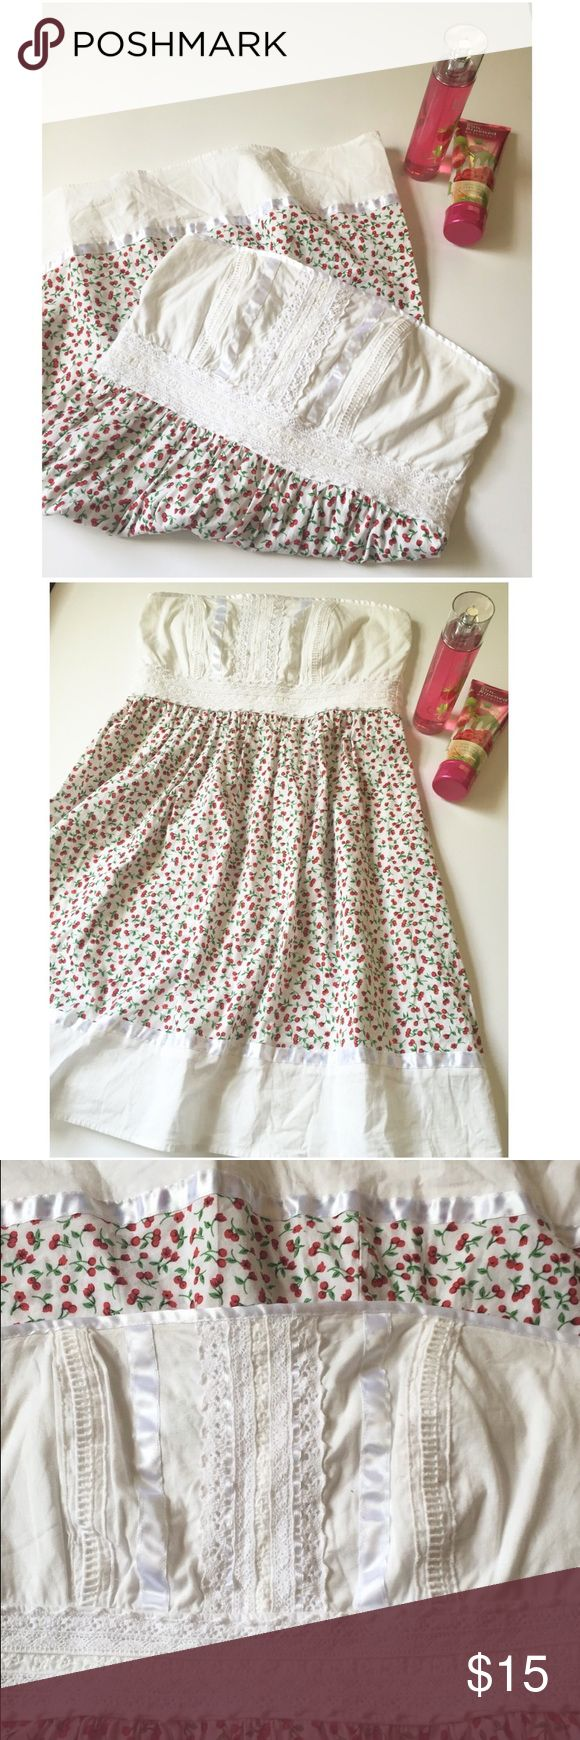 Maurices • Strapless • Summer • Dress Adorable strapless dress with lace, satin and a cute cherry print. Zipper with elastic in the back.  Brand • Maurices.  Size • Large.  Fabric • Shell/Contrast 97% cotton, 3% spandex • Lining 100% polyester.  Measurements upon request. Maurices Dresses Strapless